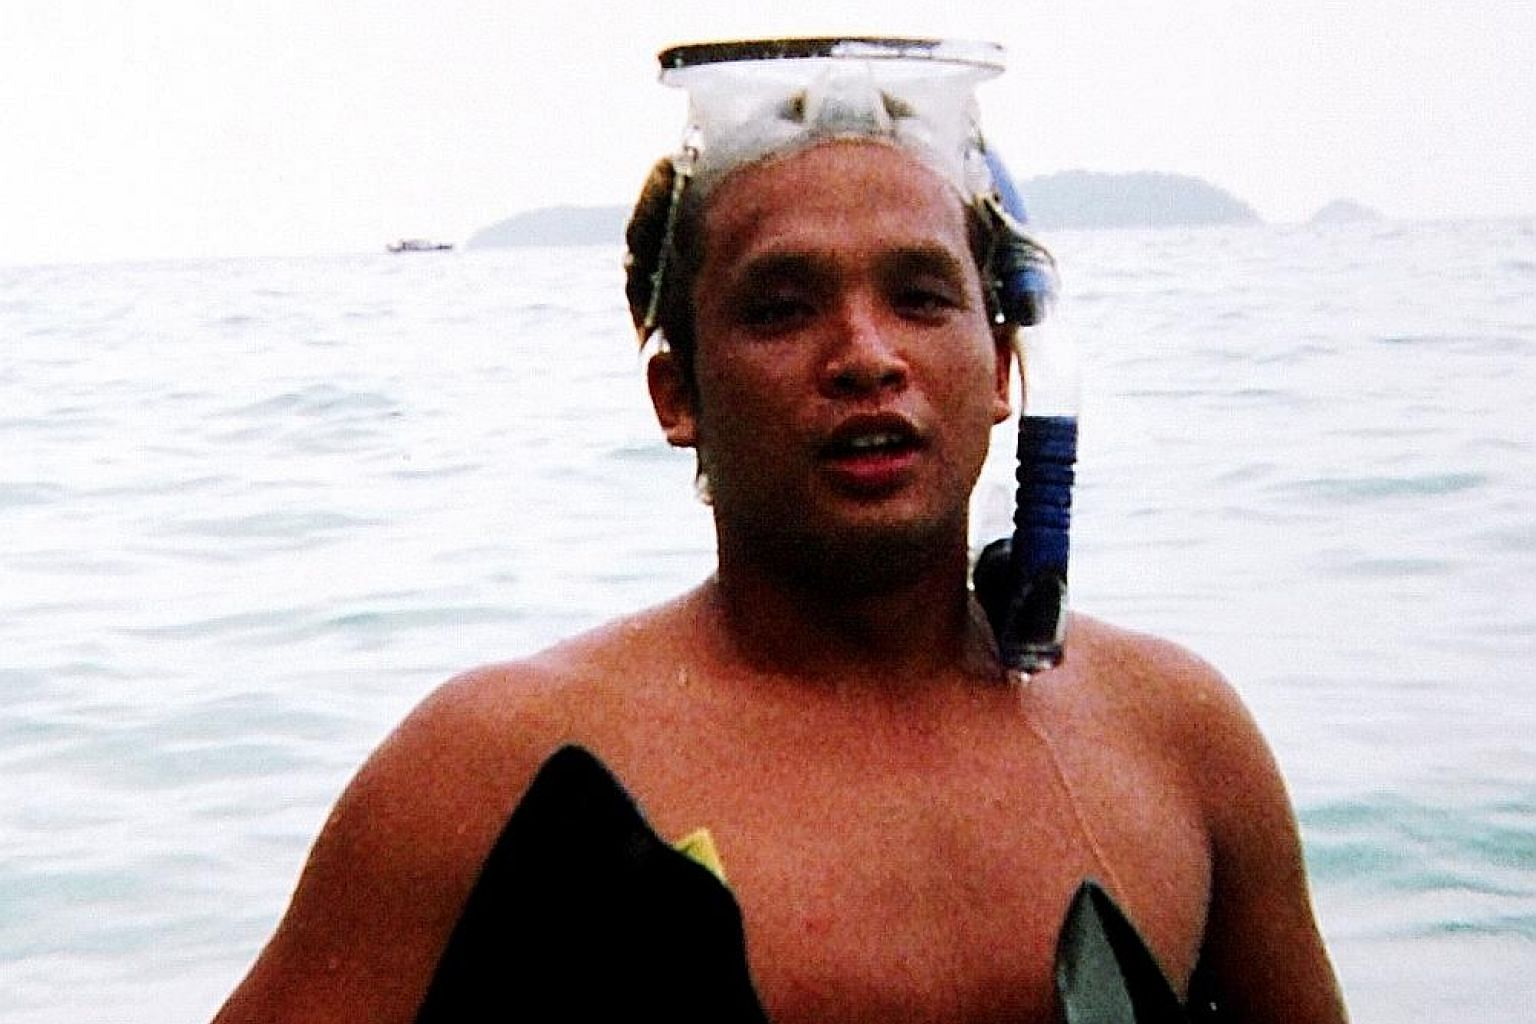 Commercial diver Mohammed Borhan Jamal was swept away by strong currents while carrying out underwater repairs to an oil tanker, the Oliva, in the waters around the Eastern Petroleum A Anchorage, near Bedok, in September 2008. His body was washed ash